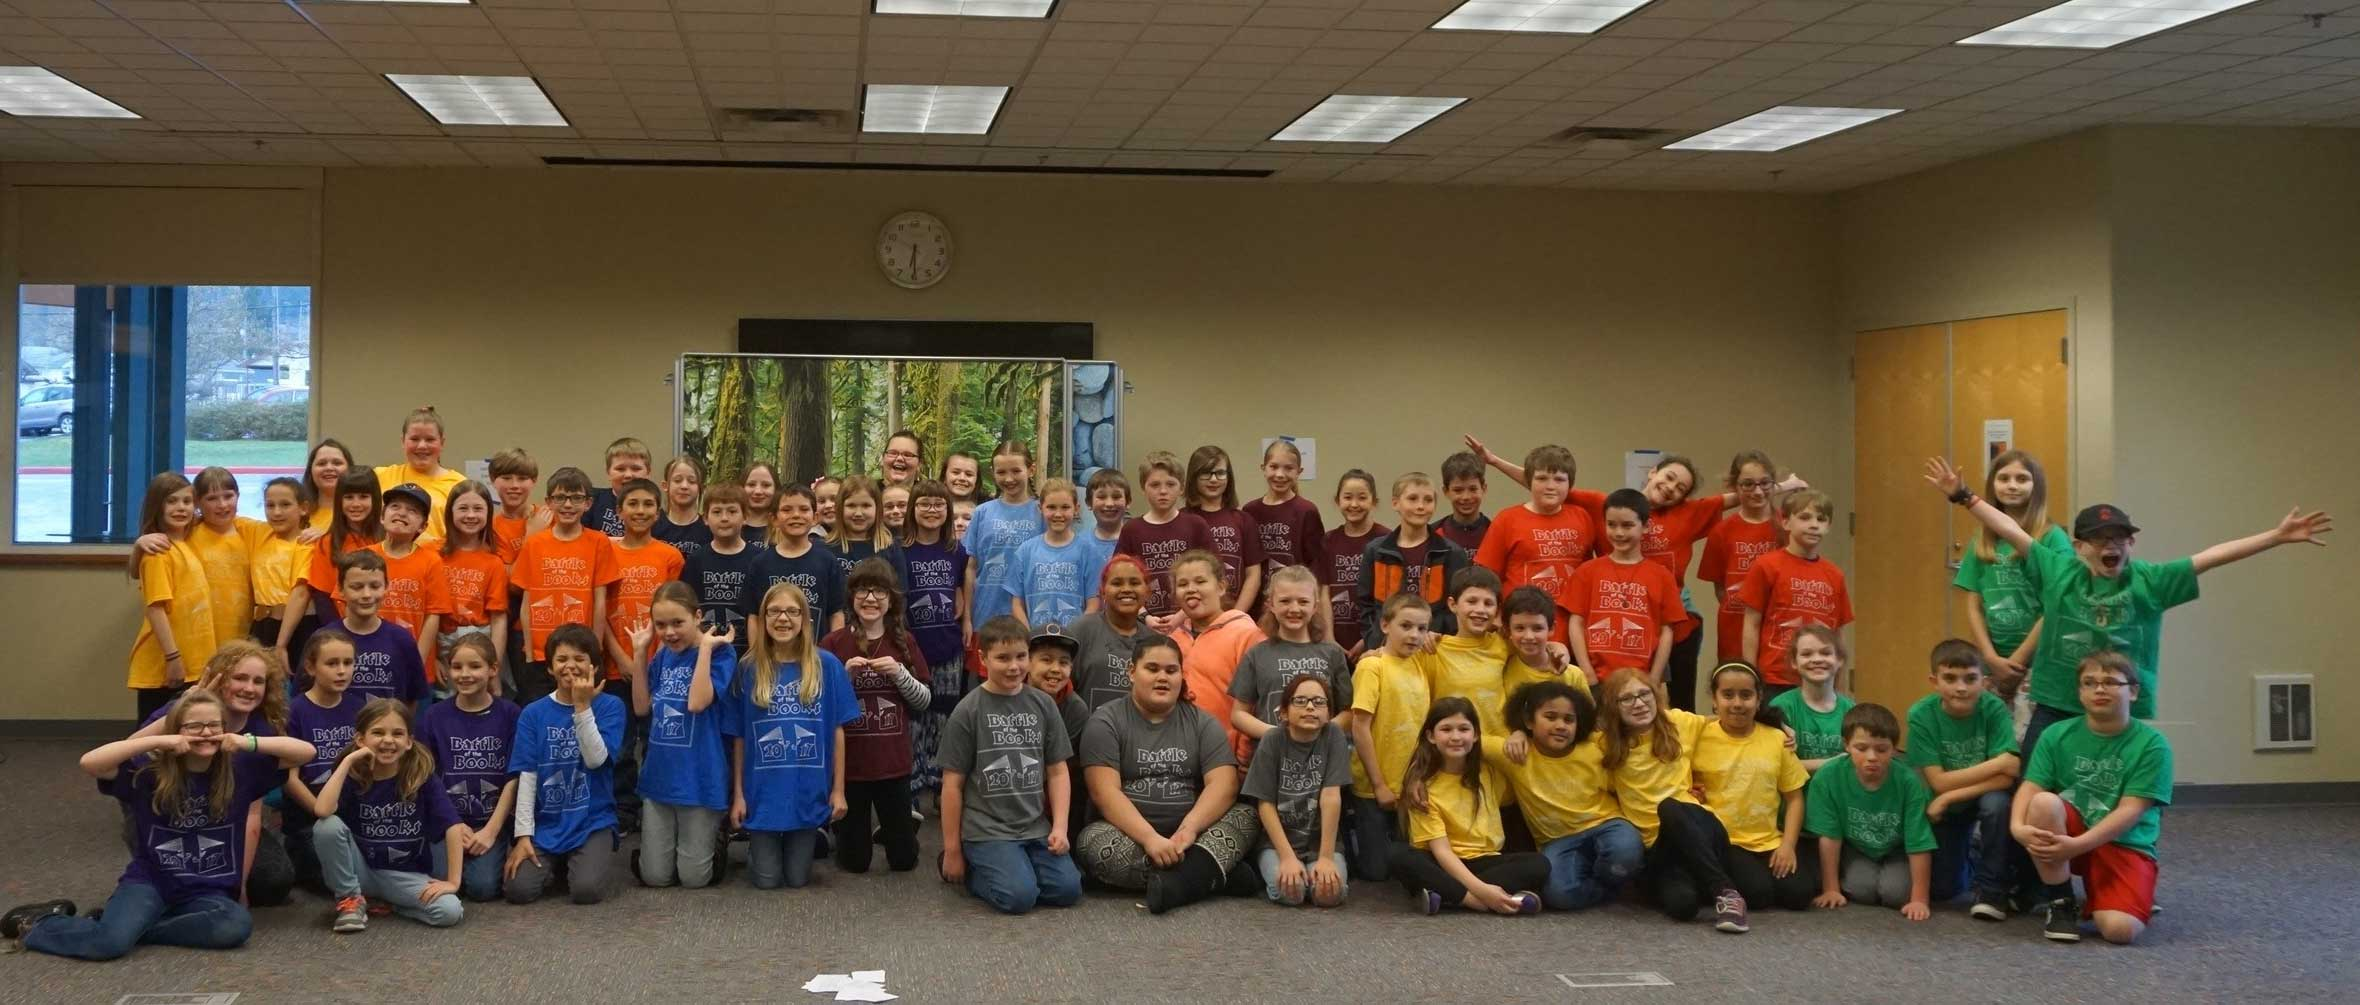 Battle of the Books: 2016-2017 teams